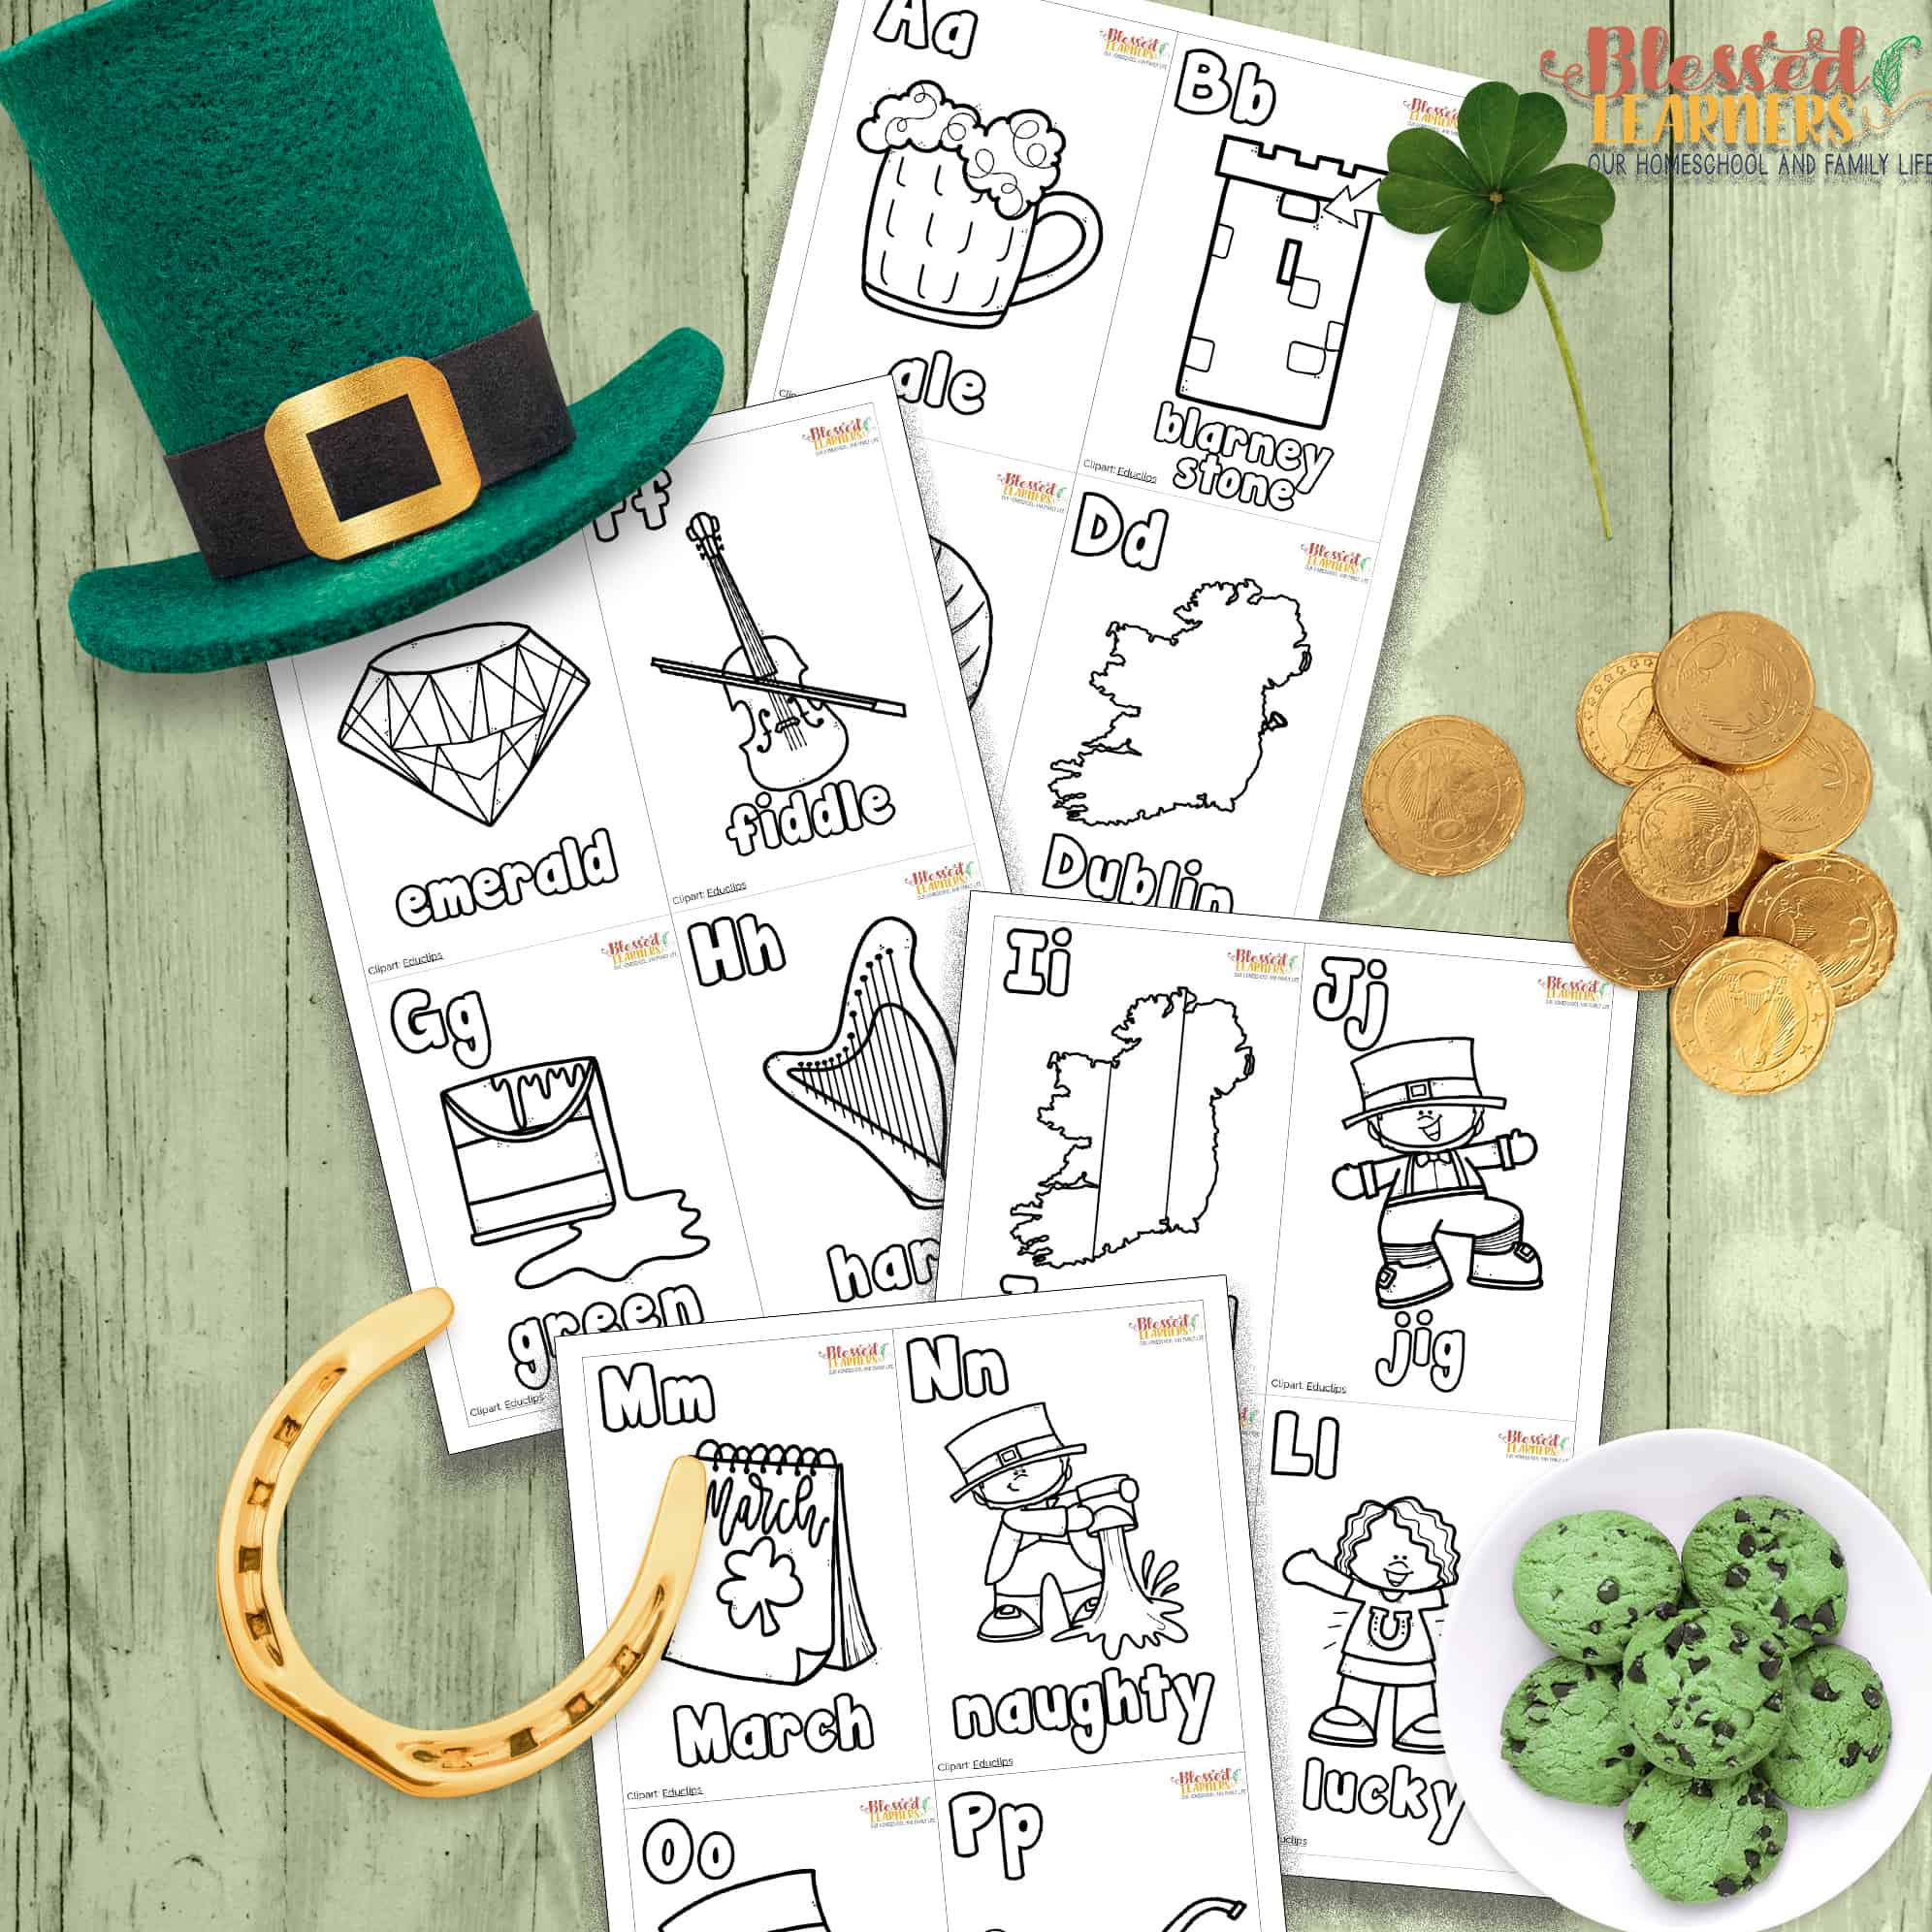 photo about Free Printable Clipart for St Patrick's Day known as Free of charge St. Patricks Working day Alphabet Flashcards - Lucky College students